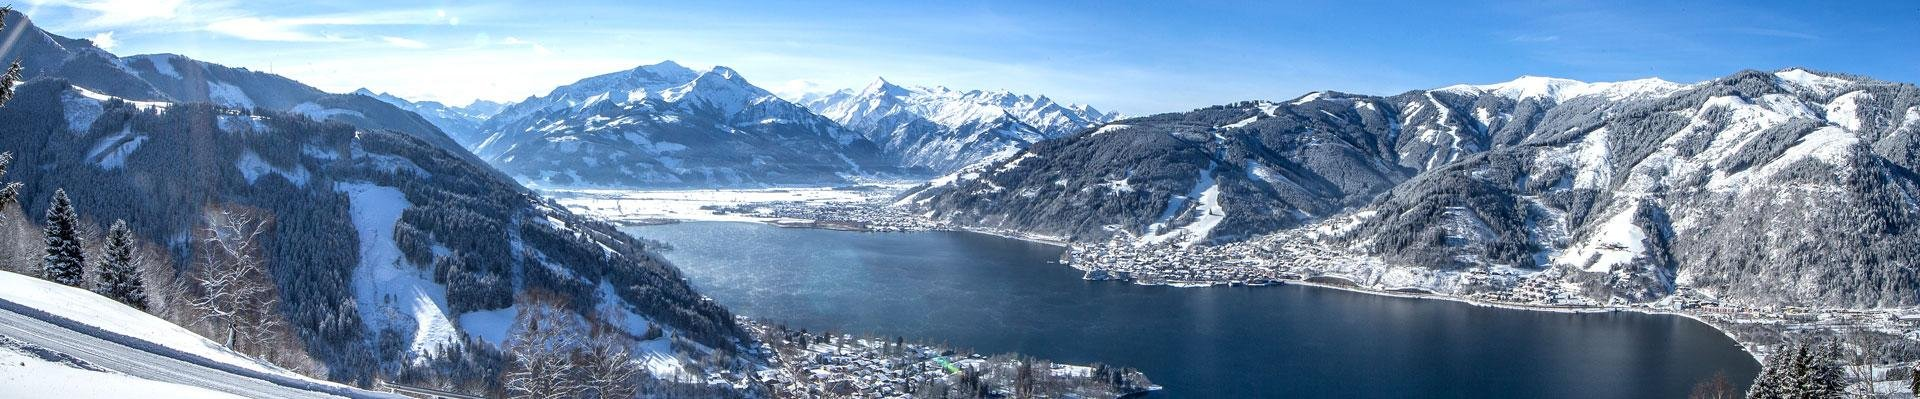 SNG Zell am See